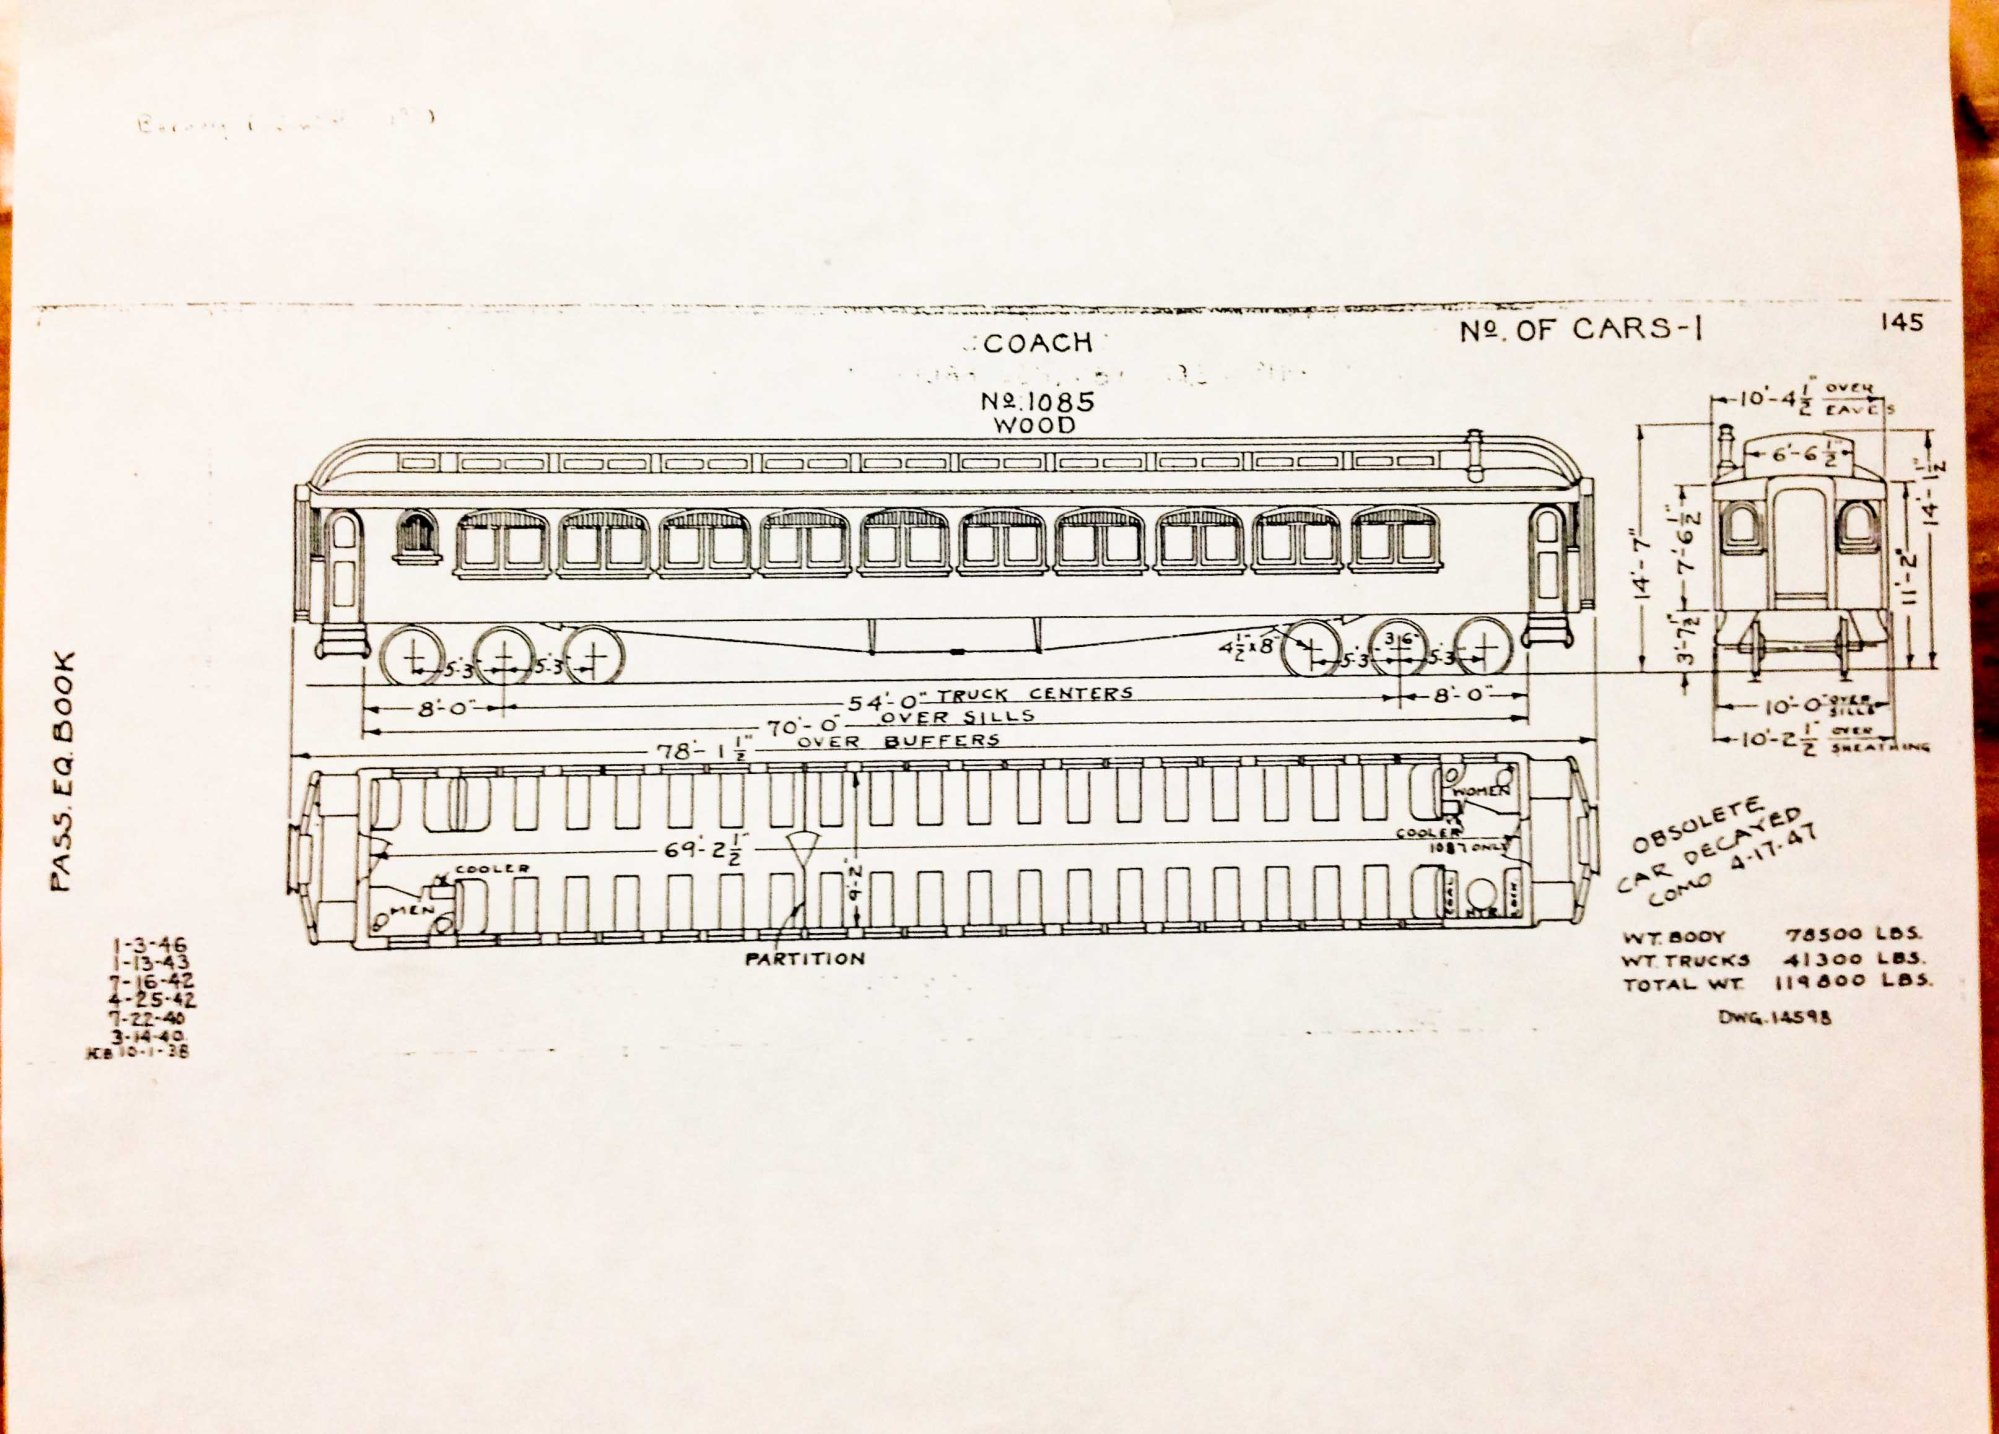 hight resolution of the original layout and design of the wooden rail car